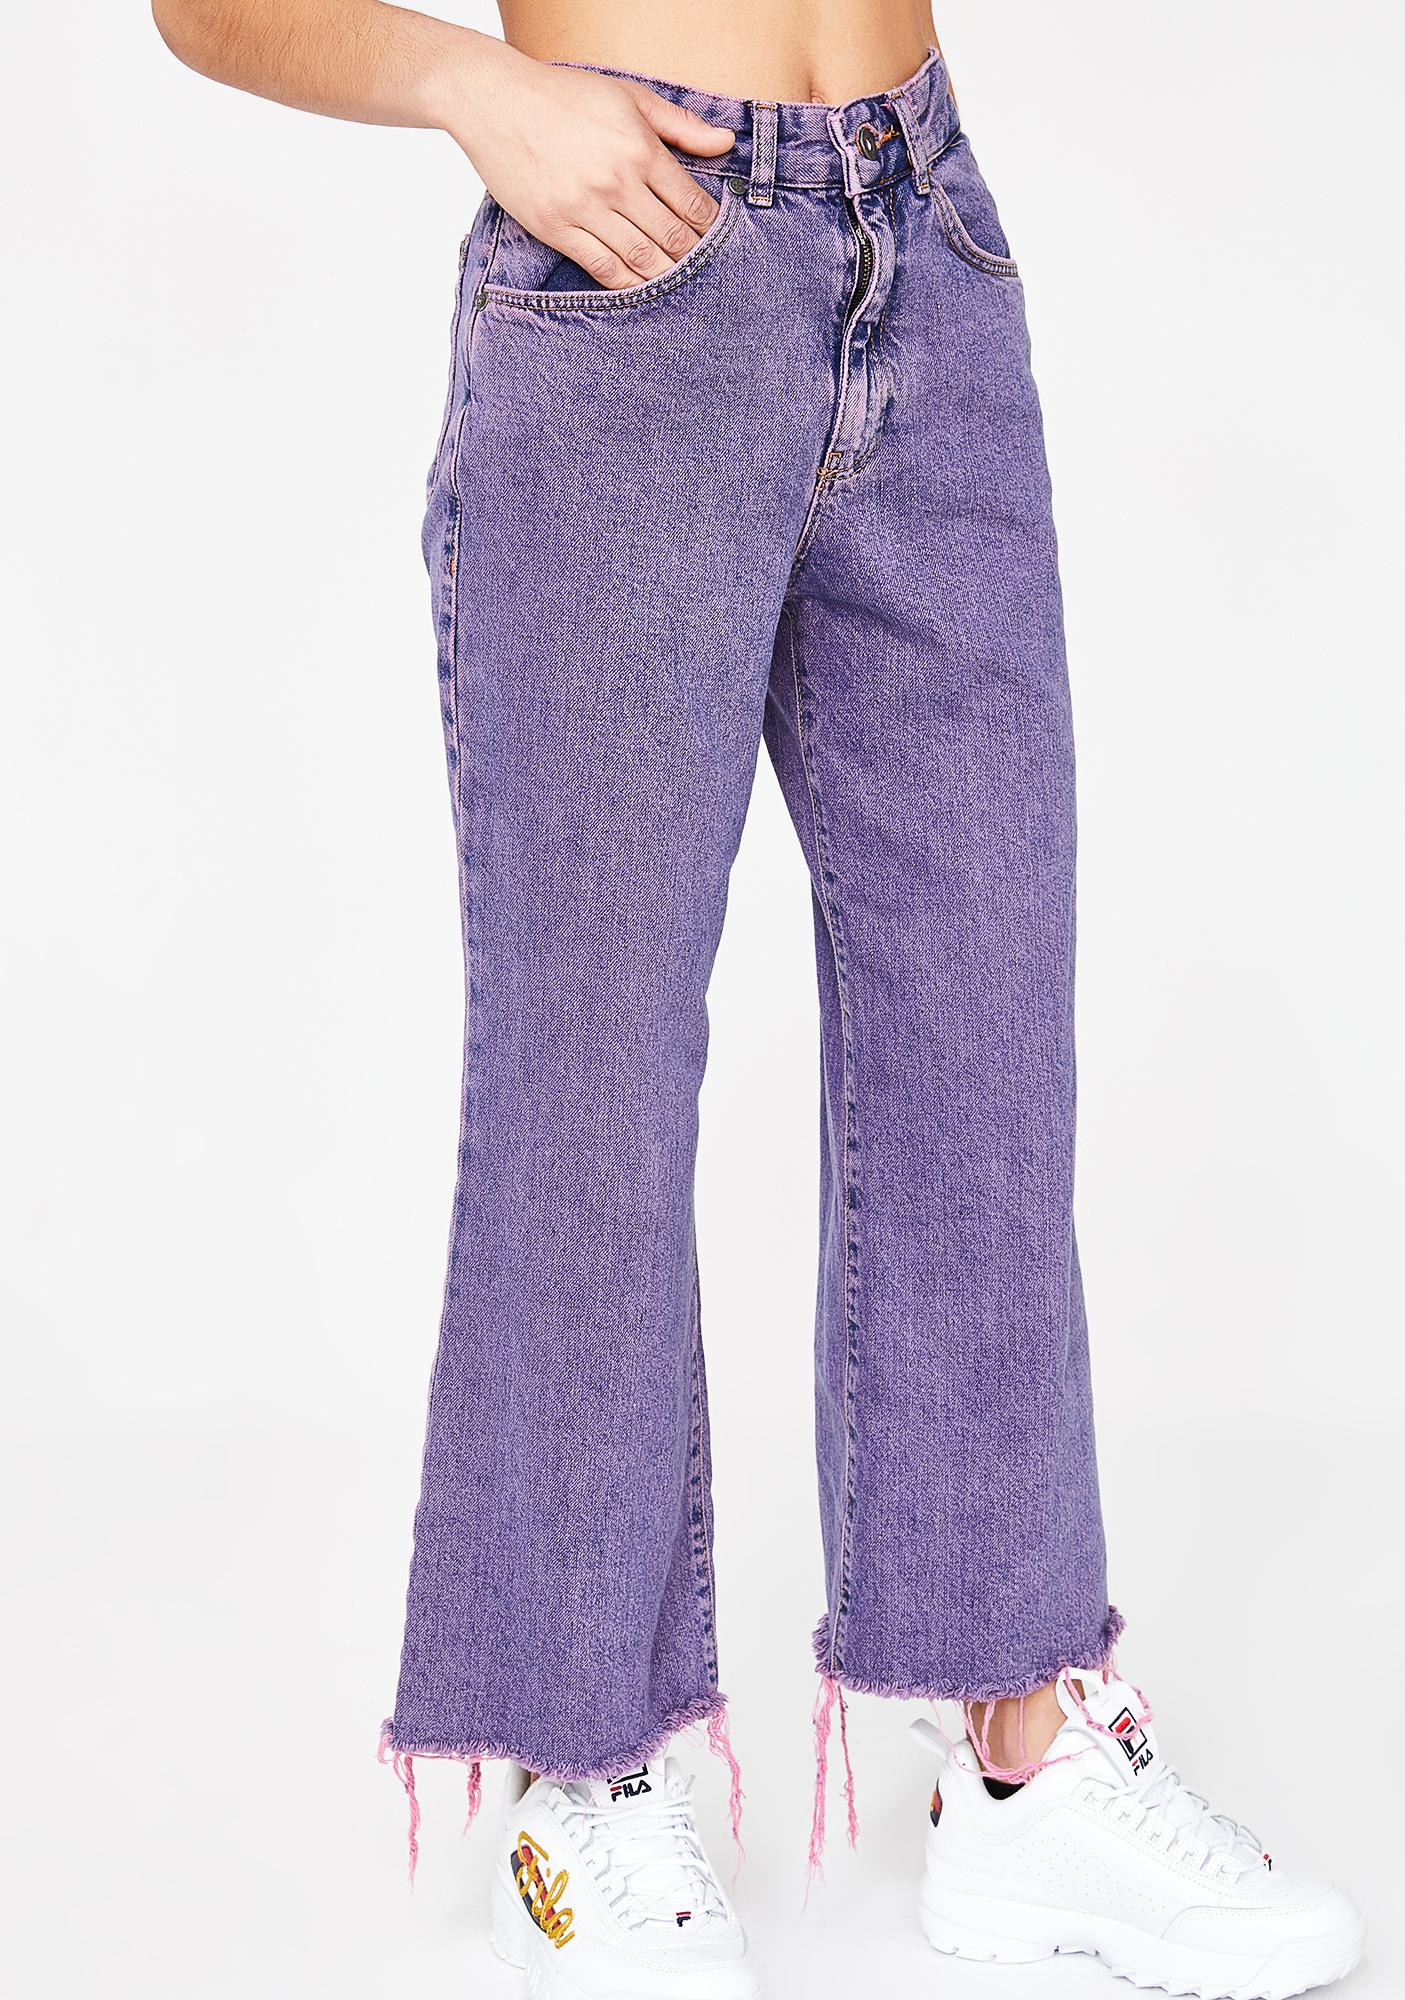 The Ragged Priest Overdyed Crop Jeans